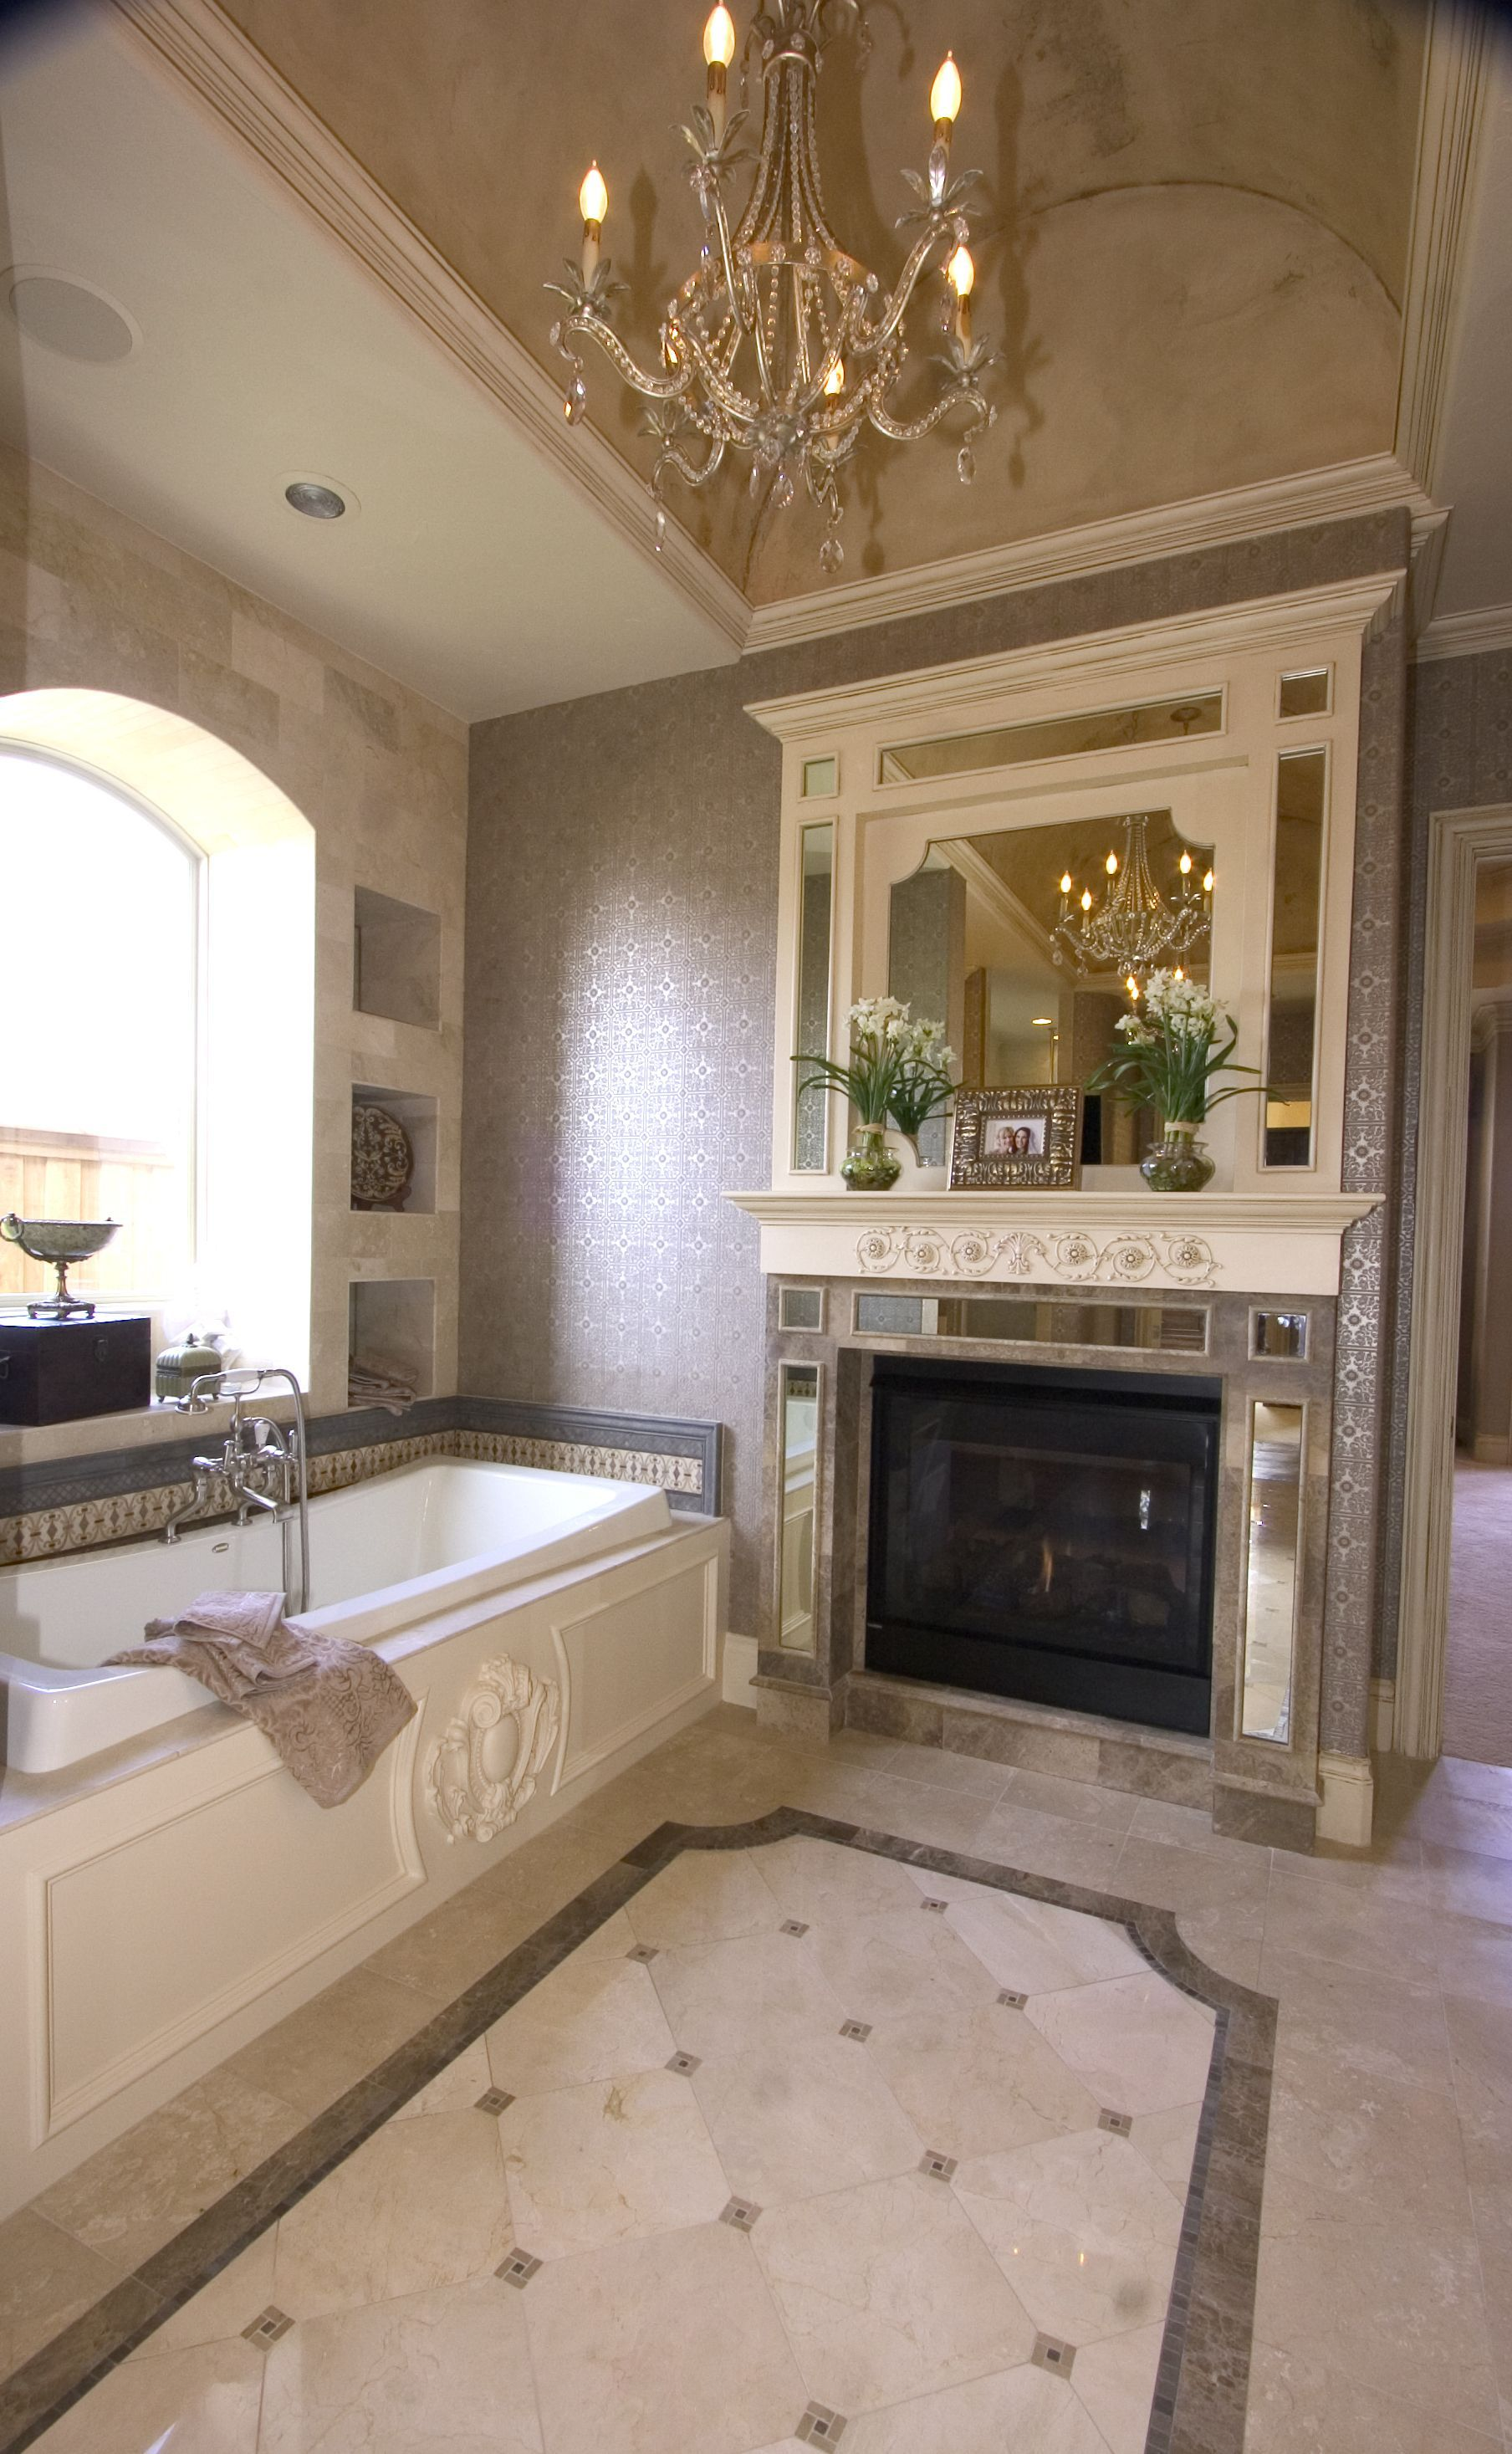 Master bedroom with jacuzzi tub  Master bath with marble floors tub surround u fireplace surround